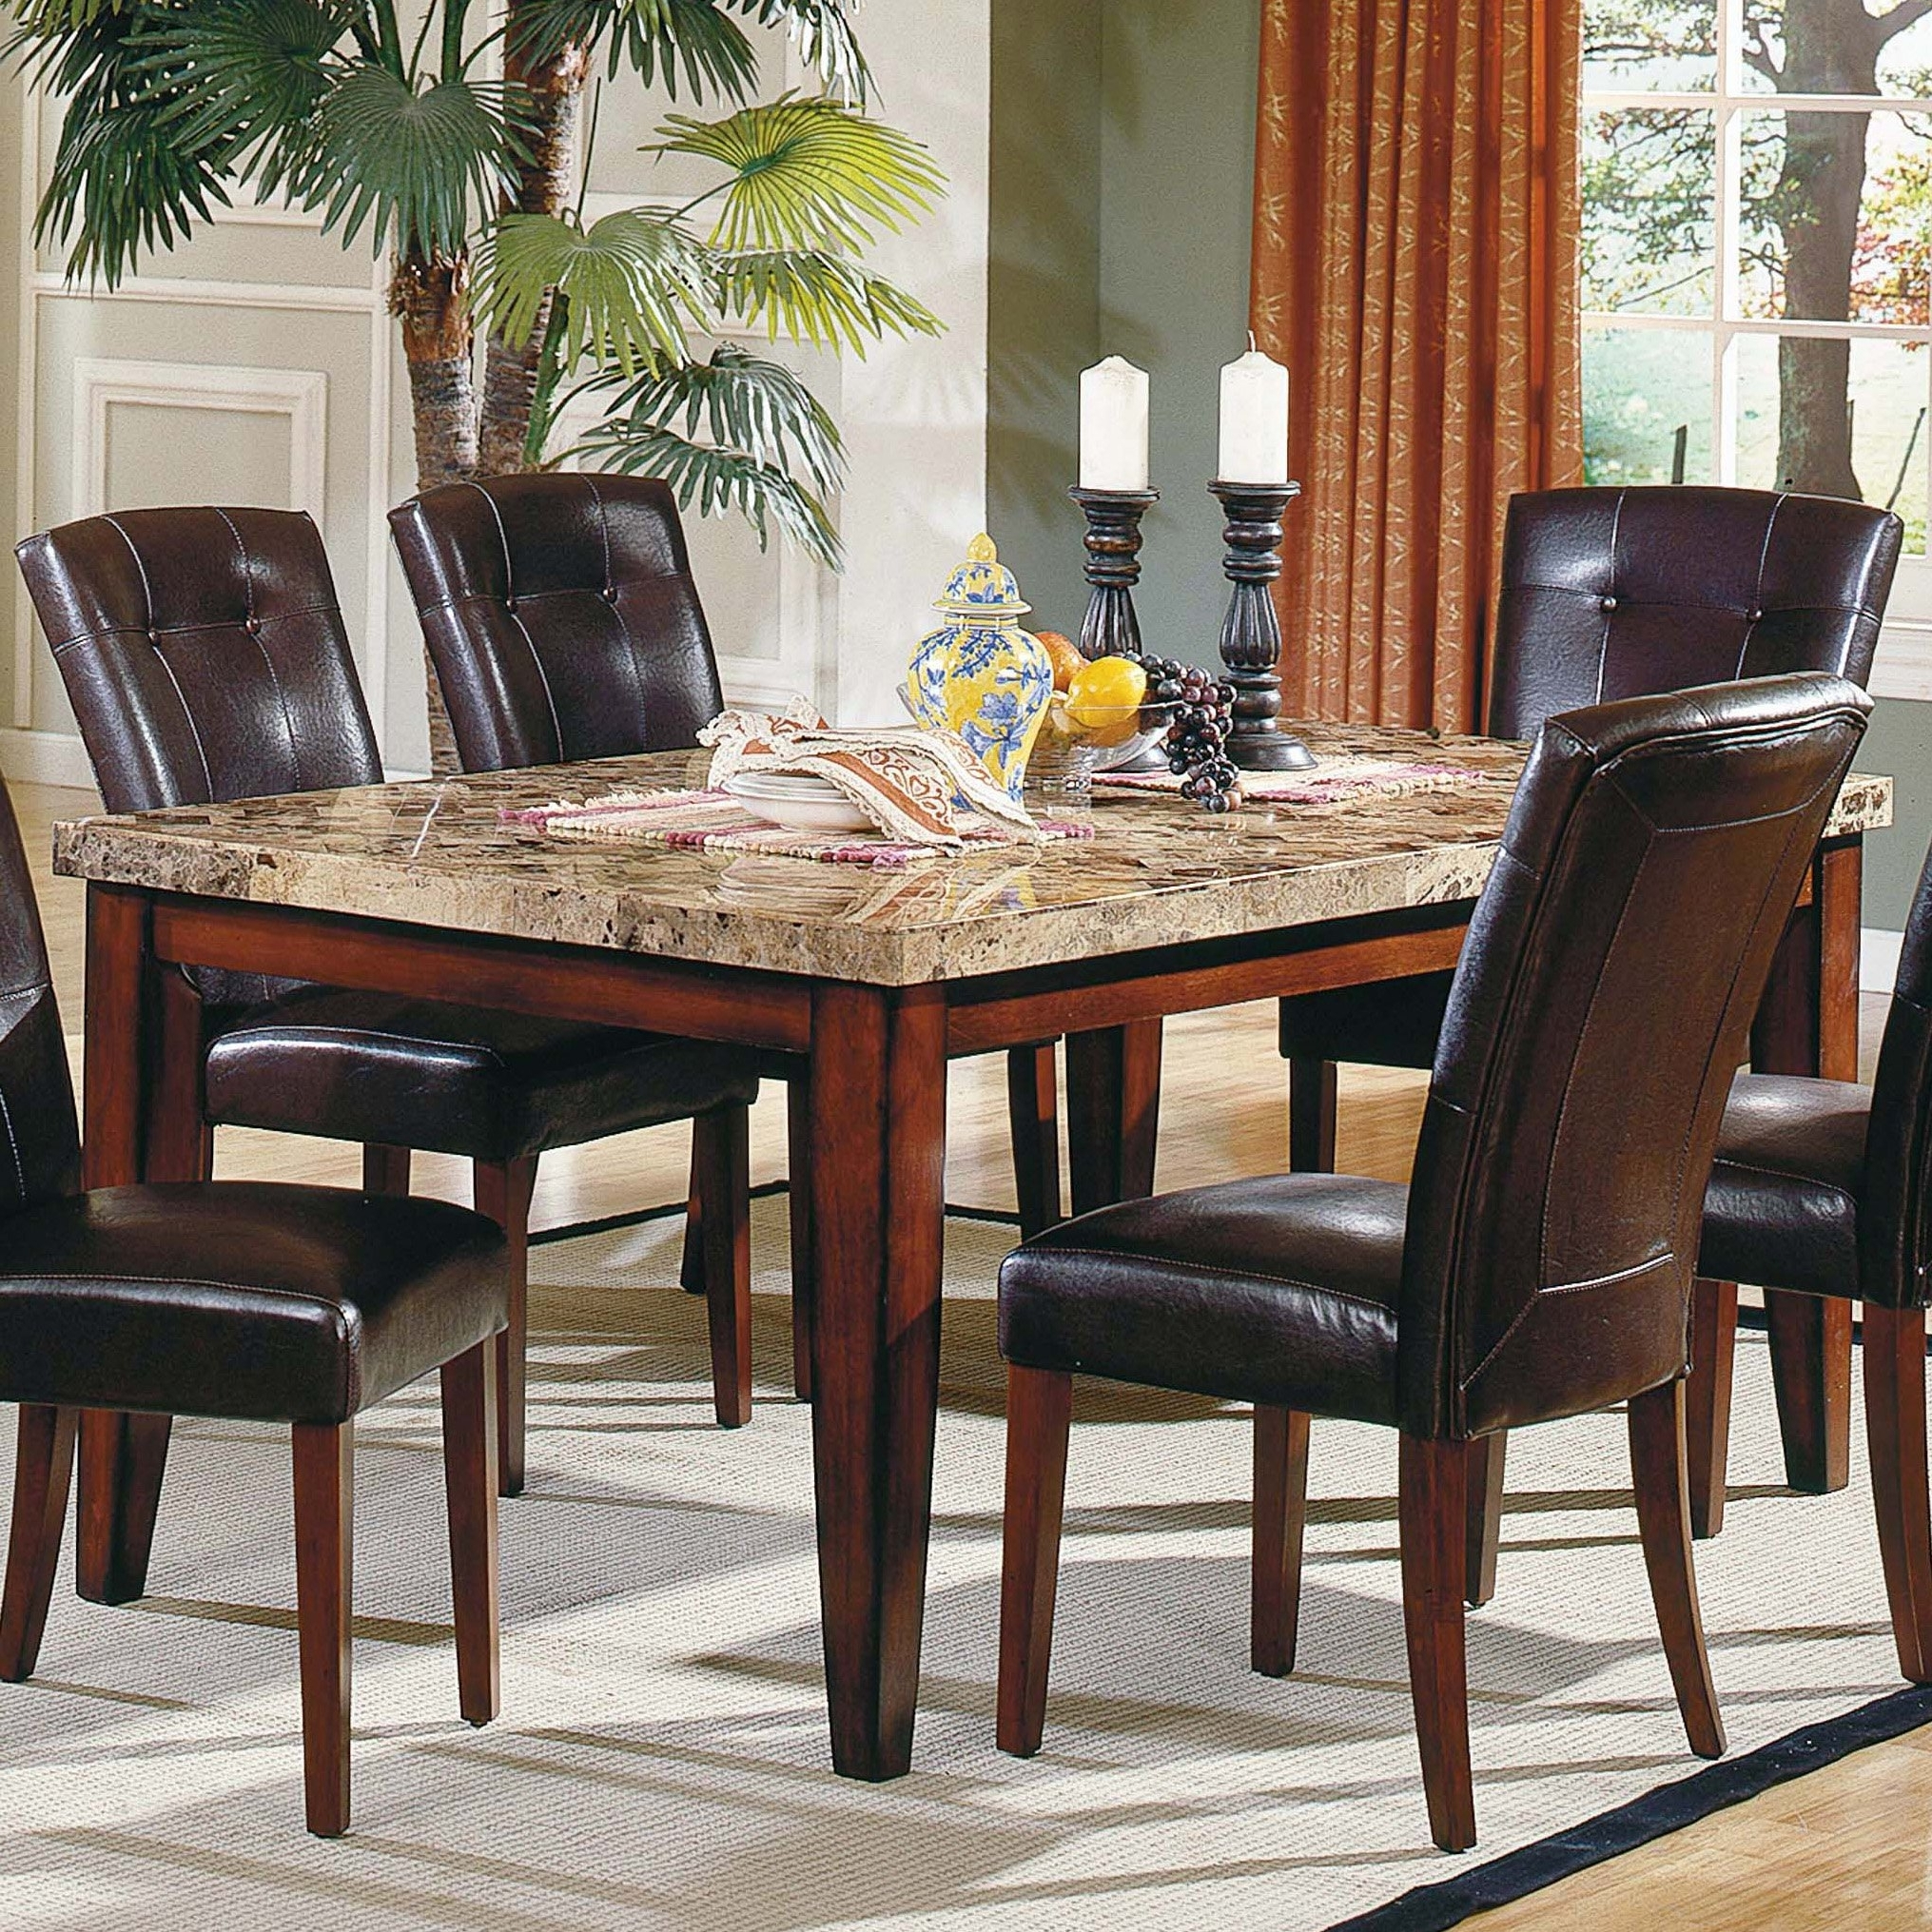 Rectangular Dining Tables Sets Throughout Most Current Steve Silver Montibello 5 Piece Marble Top Rectangular Dining Table (View 21 of 25)